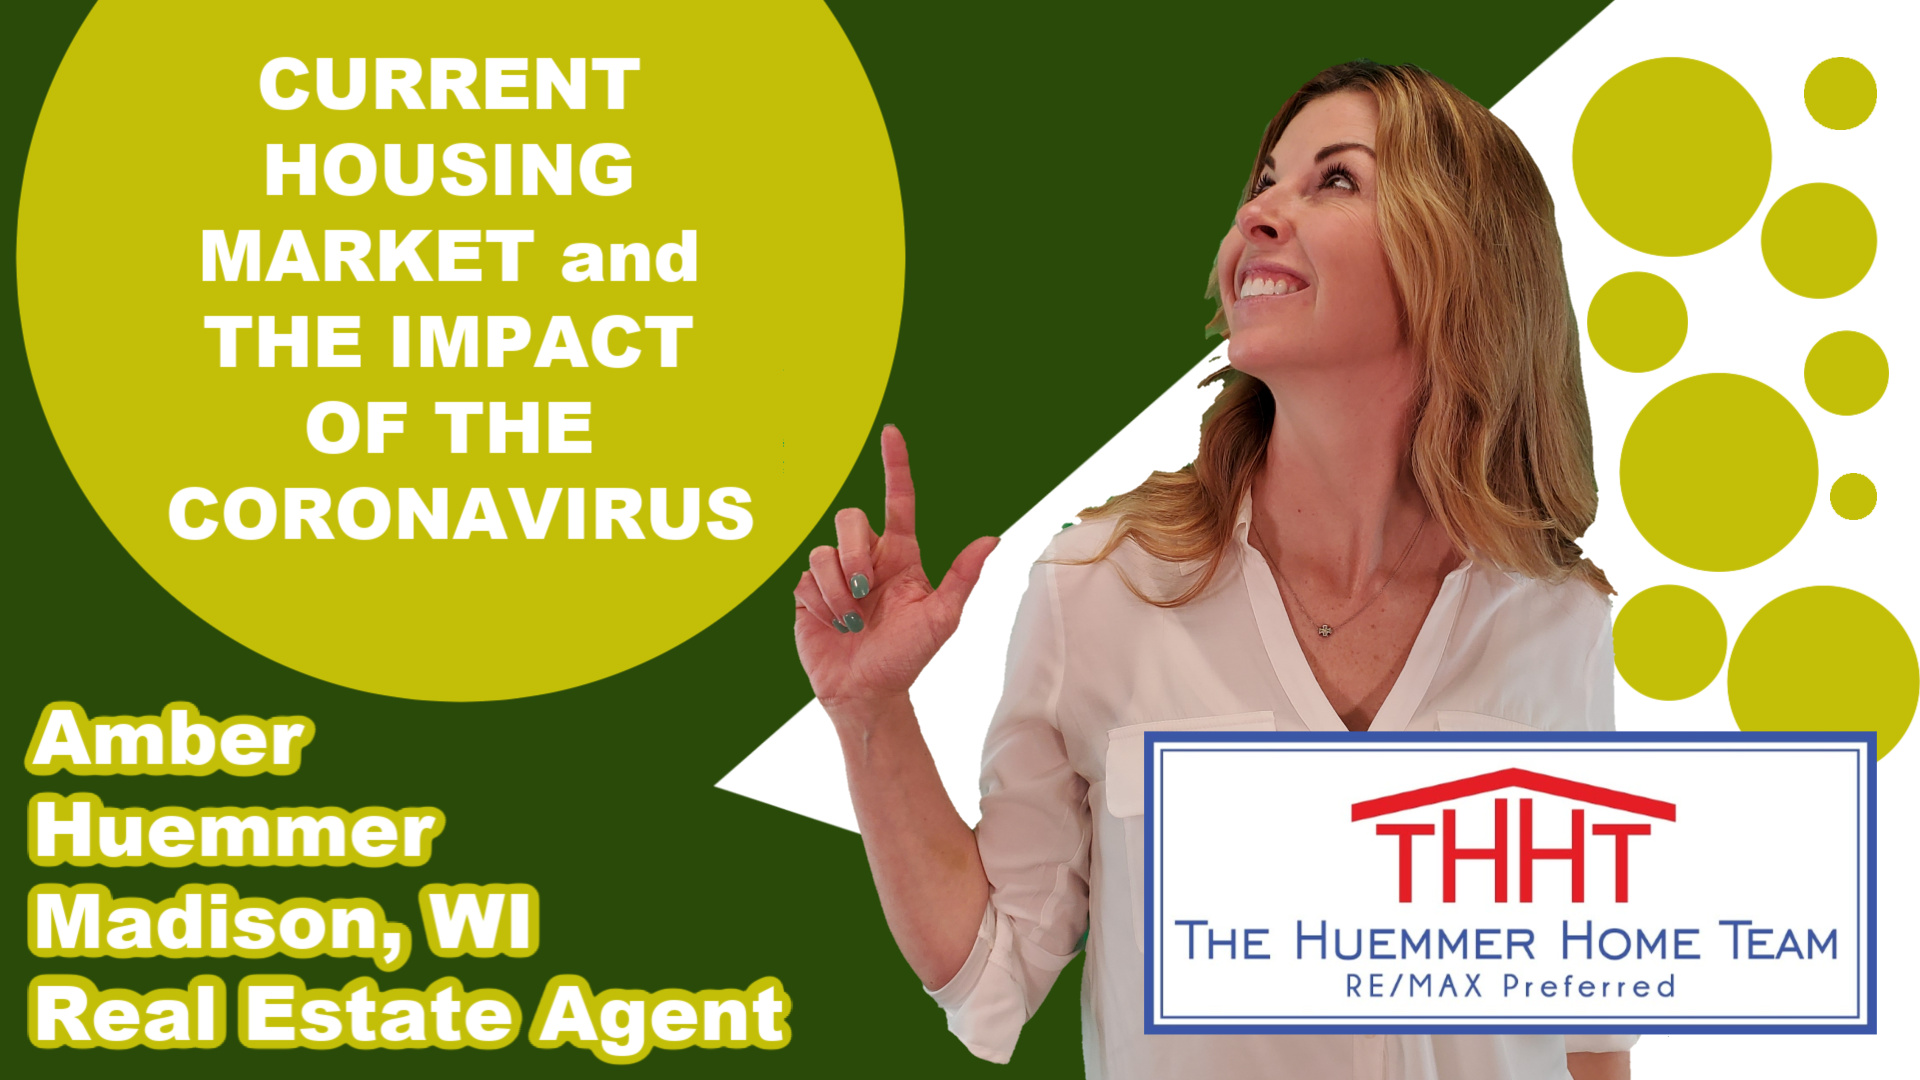 The Current Housing Market and The Impact of the Coronavirus | Real Estate Agent Amber Huemmer | The Huemmer Home Team